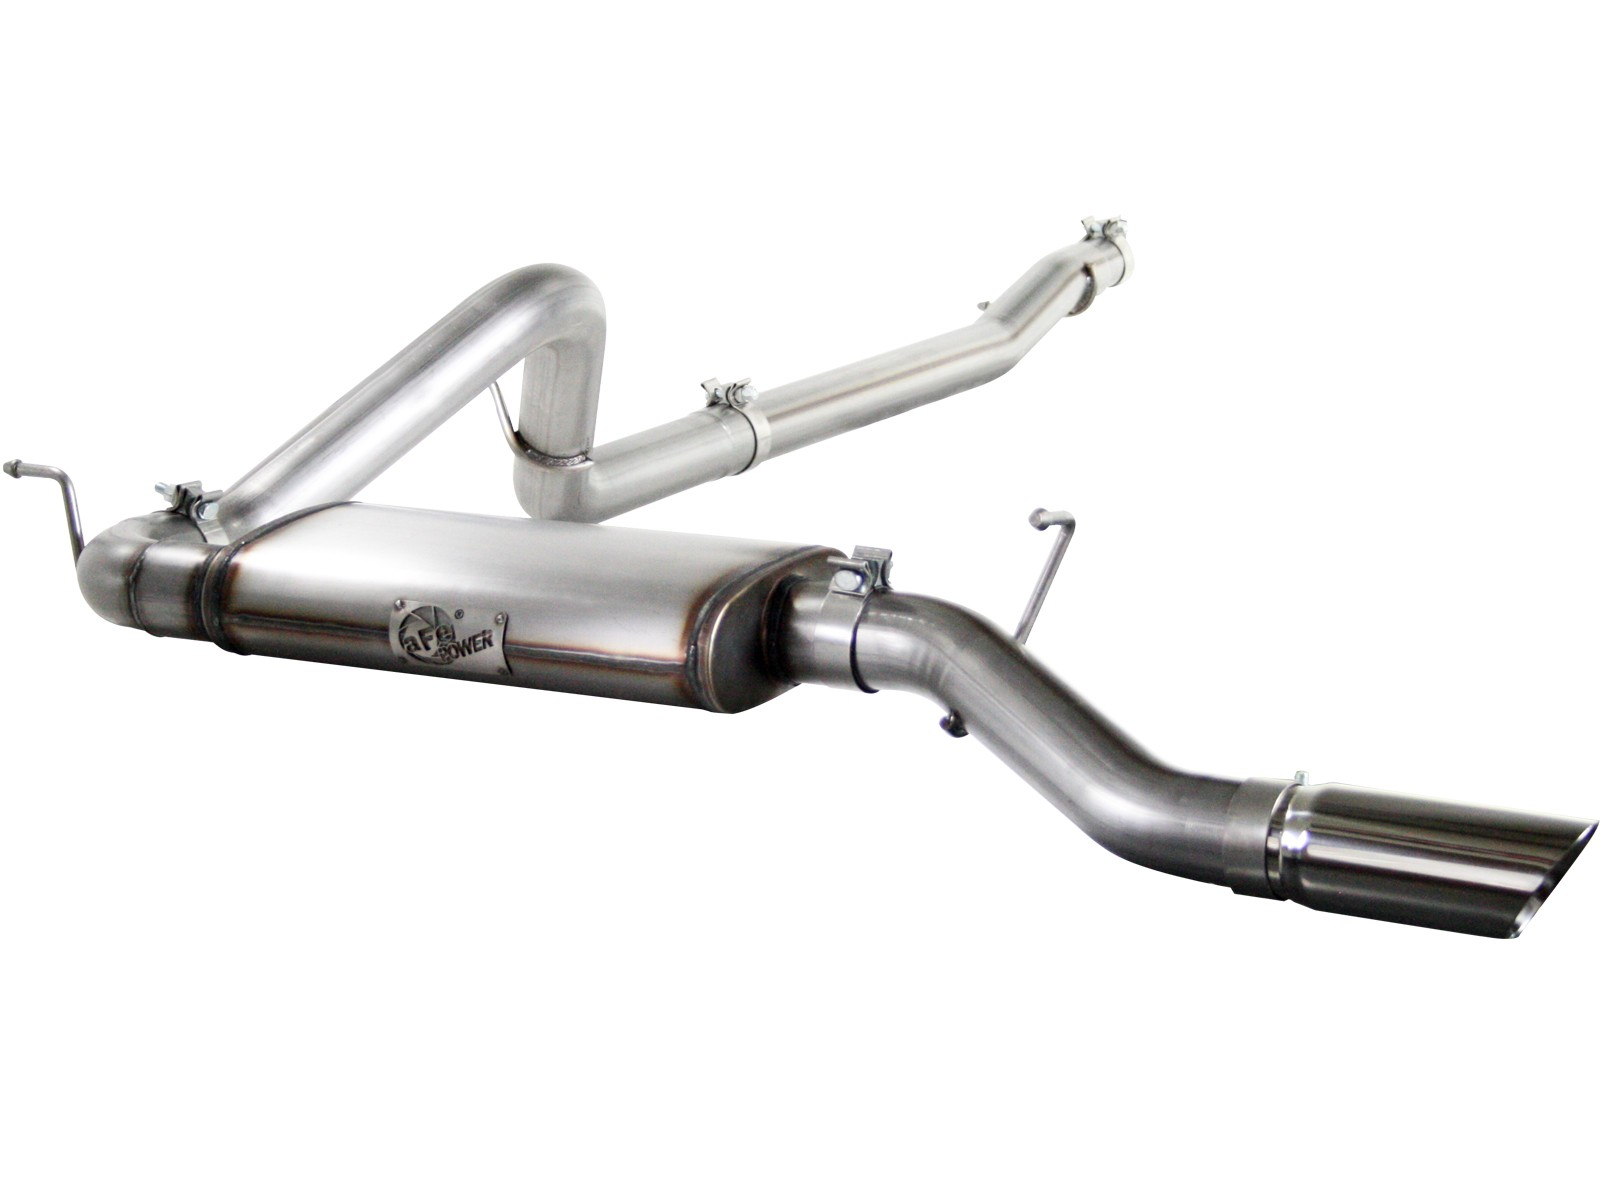 "aFe POWER 49-46213 MACH Force-Xp 3"" 409 Stainless Steel Cat-Back Exhaust System"